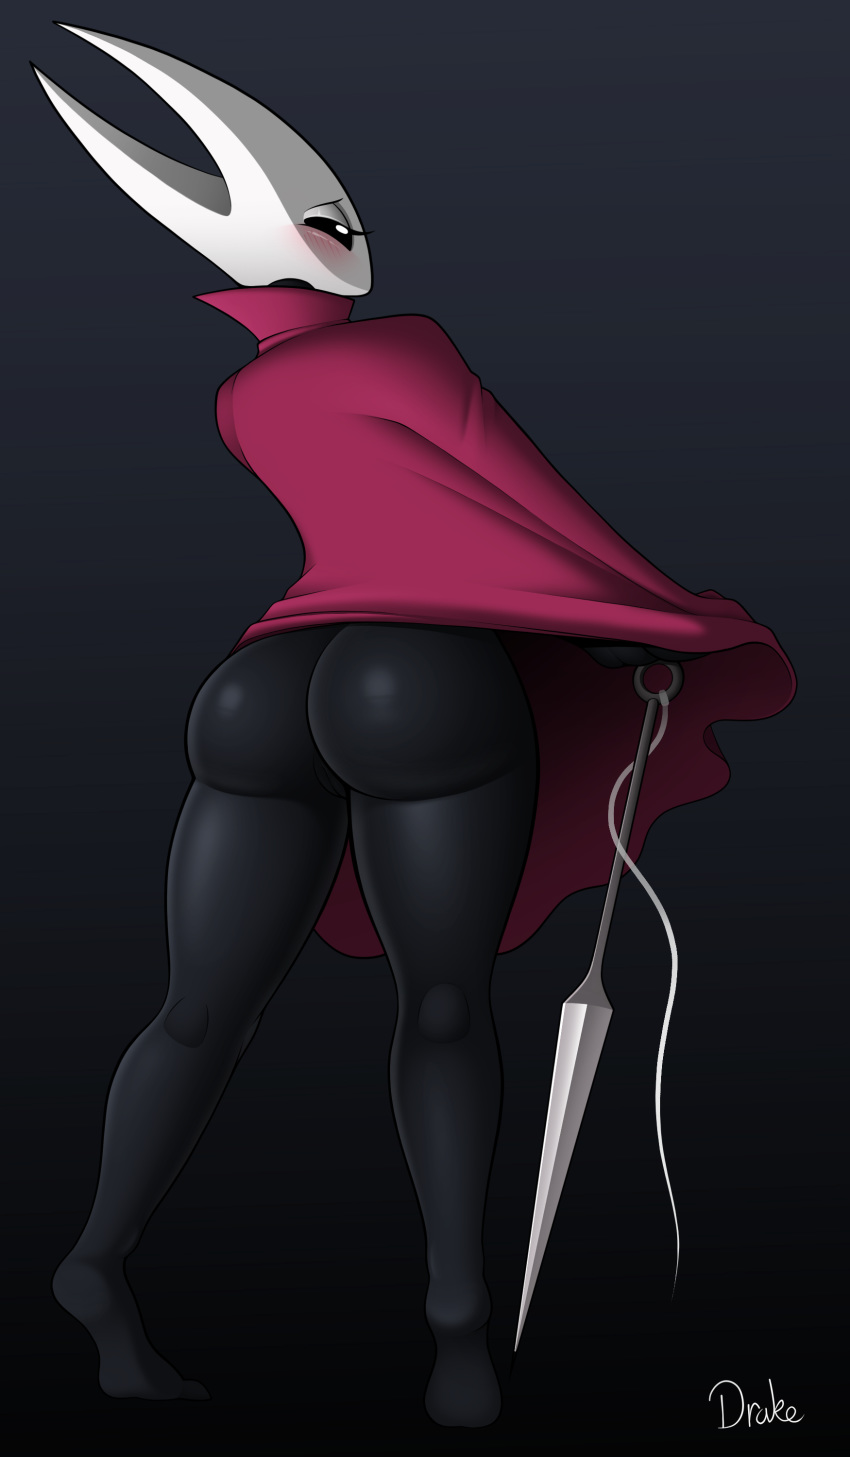 hollow lady knight the white Hat in time